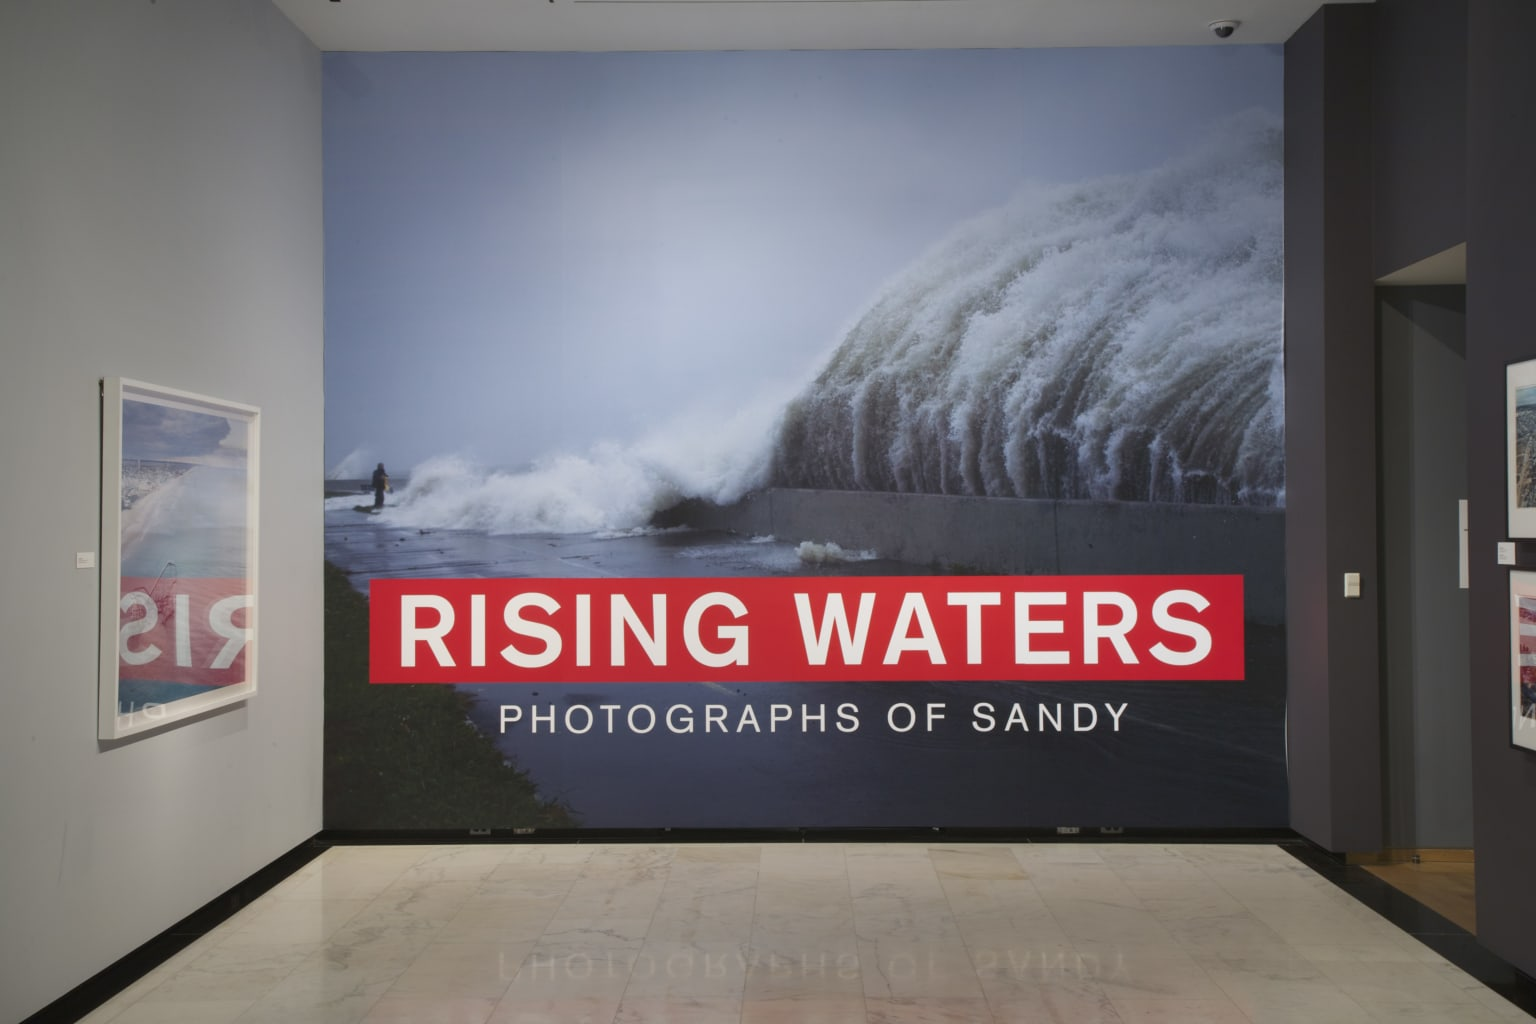 Rising Waters at the Museum of the City of New York